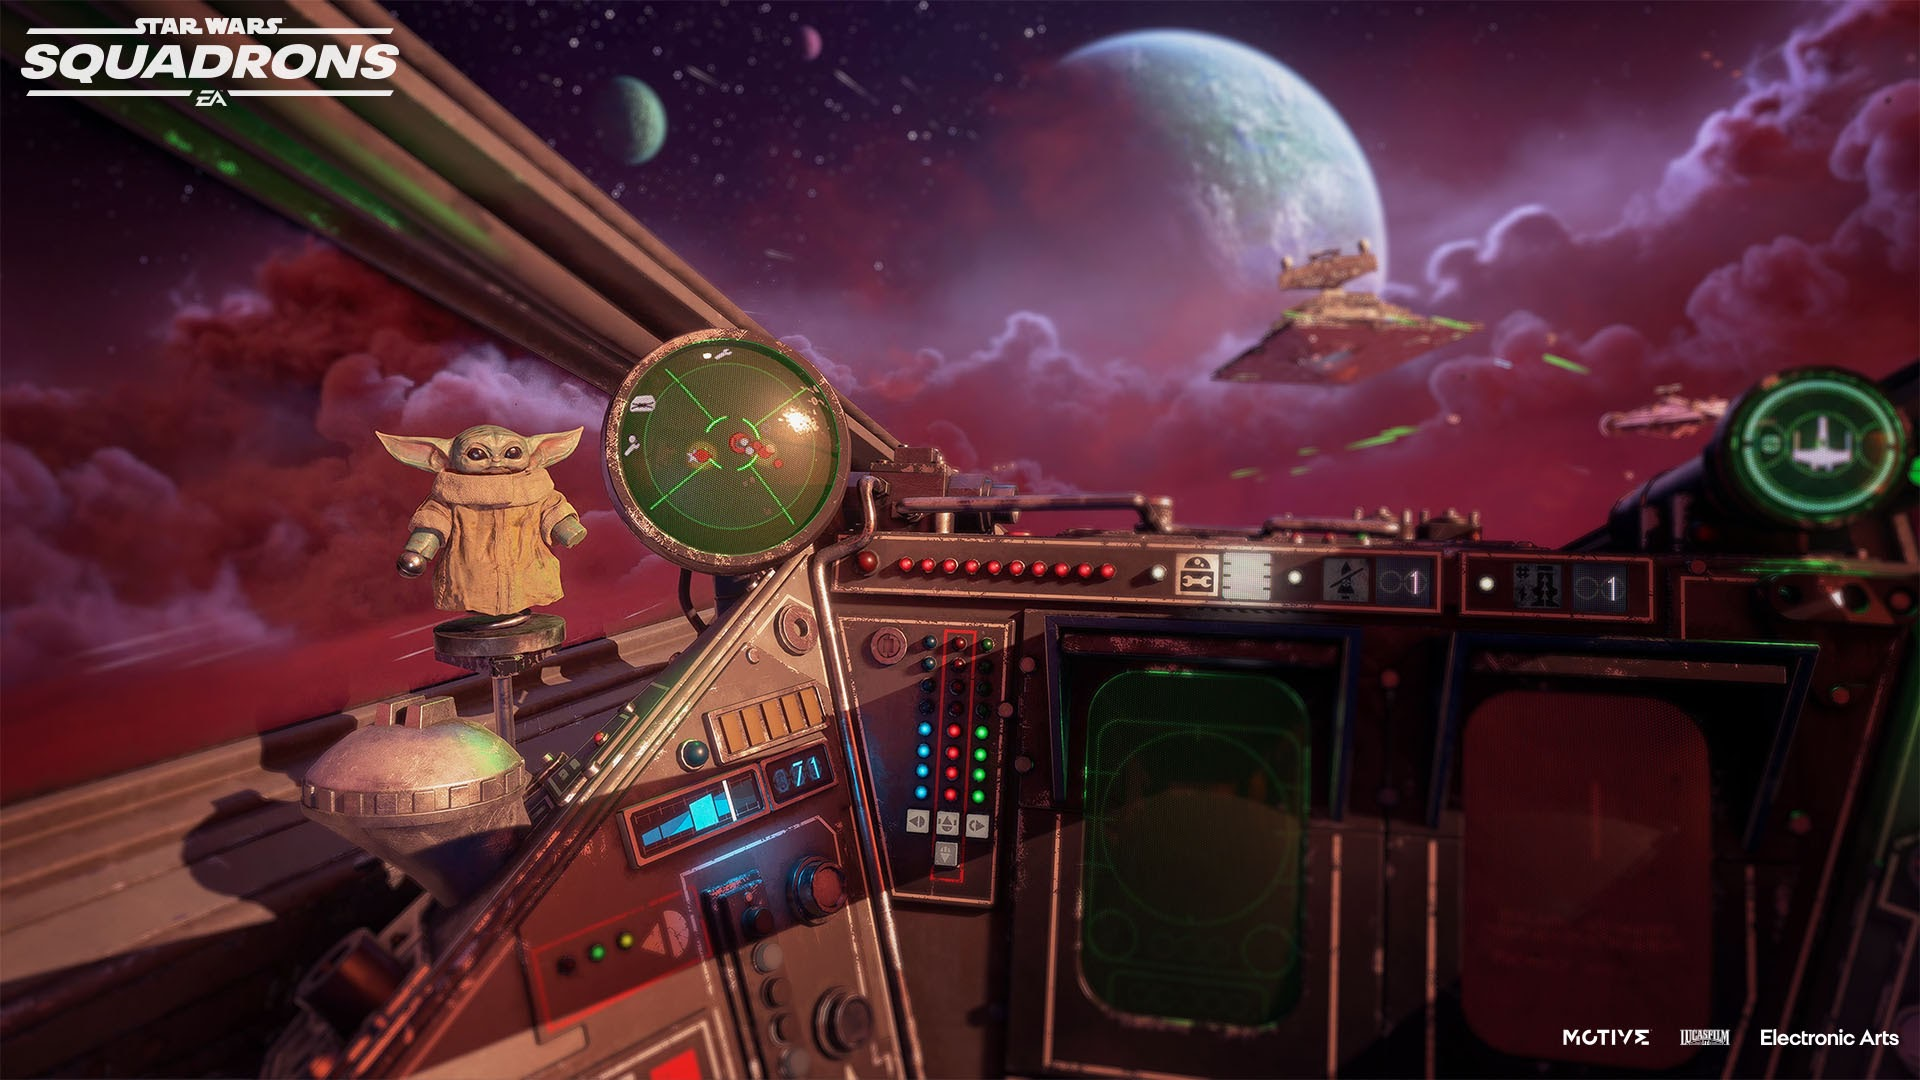 'Star Wars: Squadrons' Getting Free 'The Mandalorian' Supply Drop